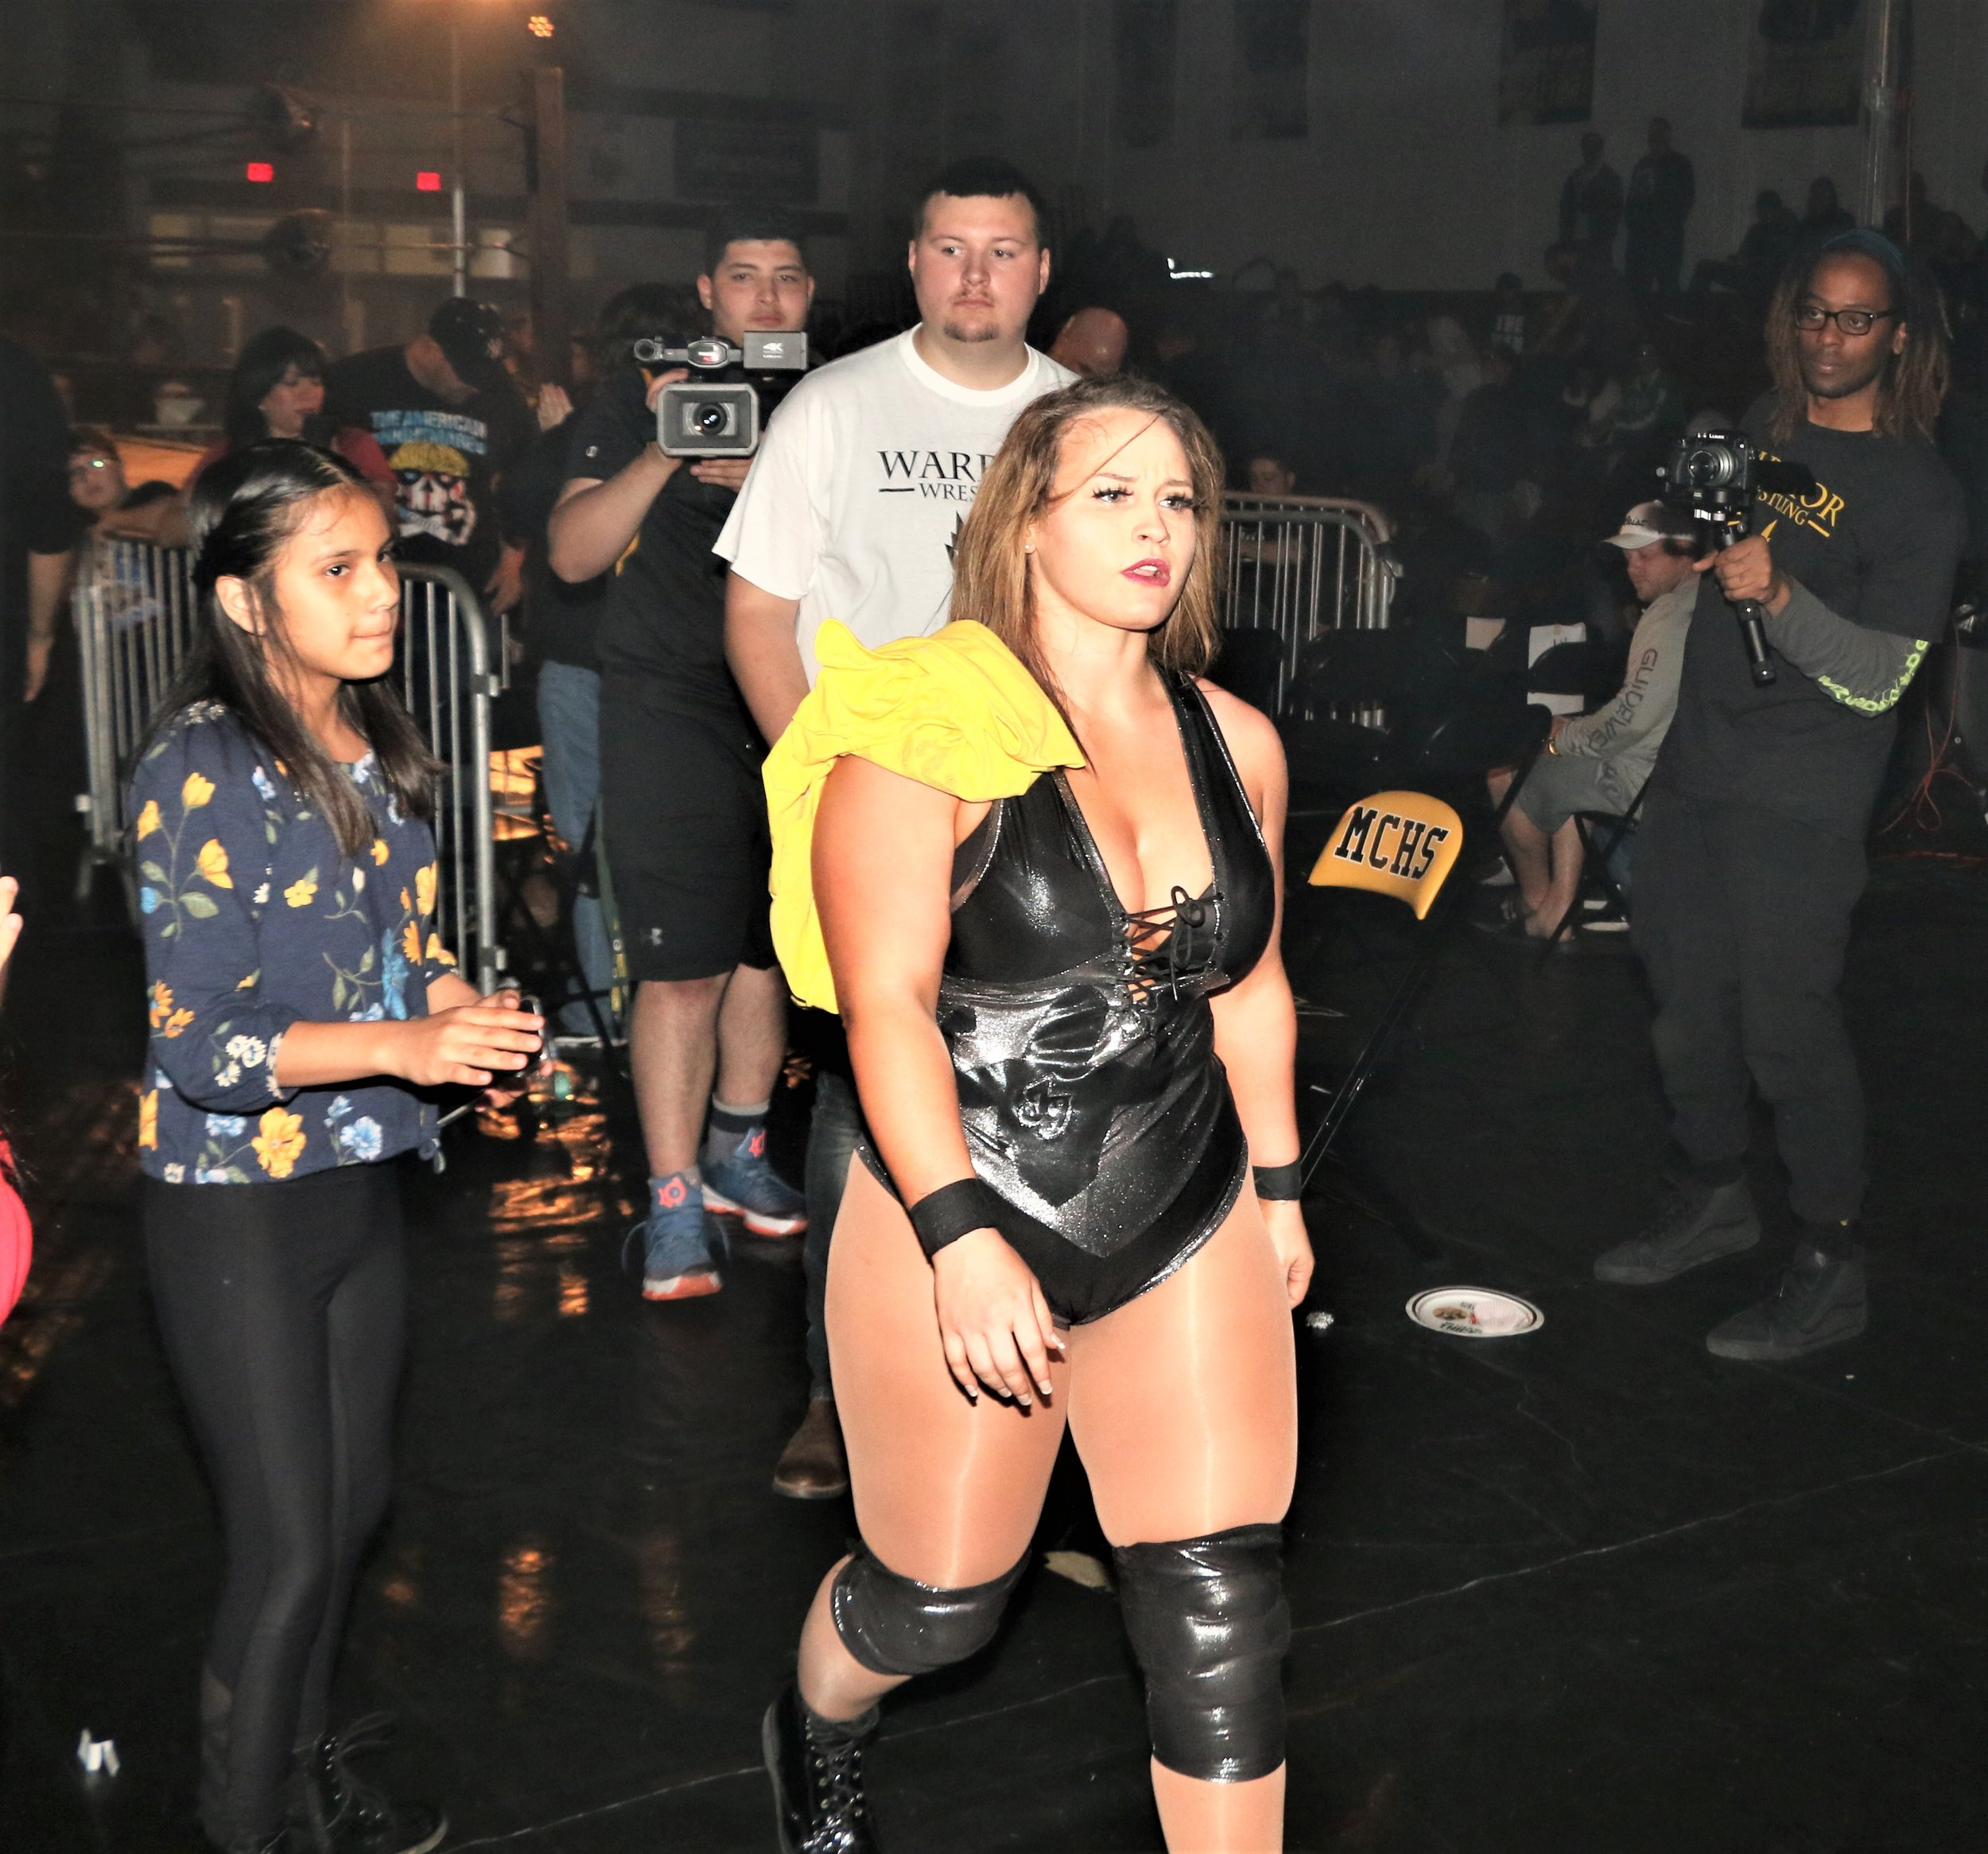 Jordynne Grace walks back to the locker room to close out the show.